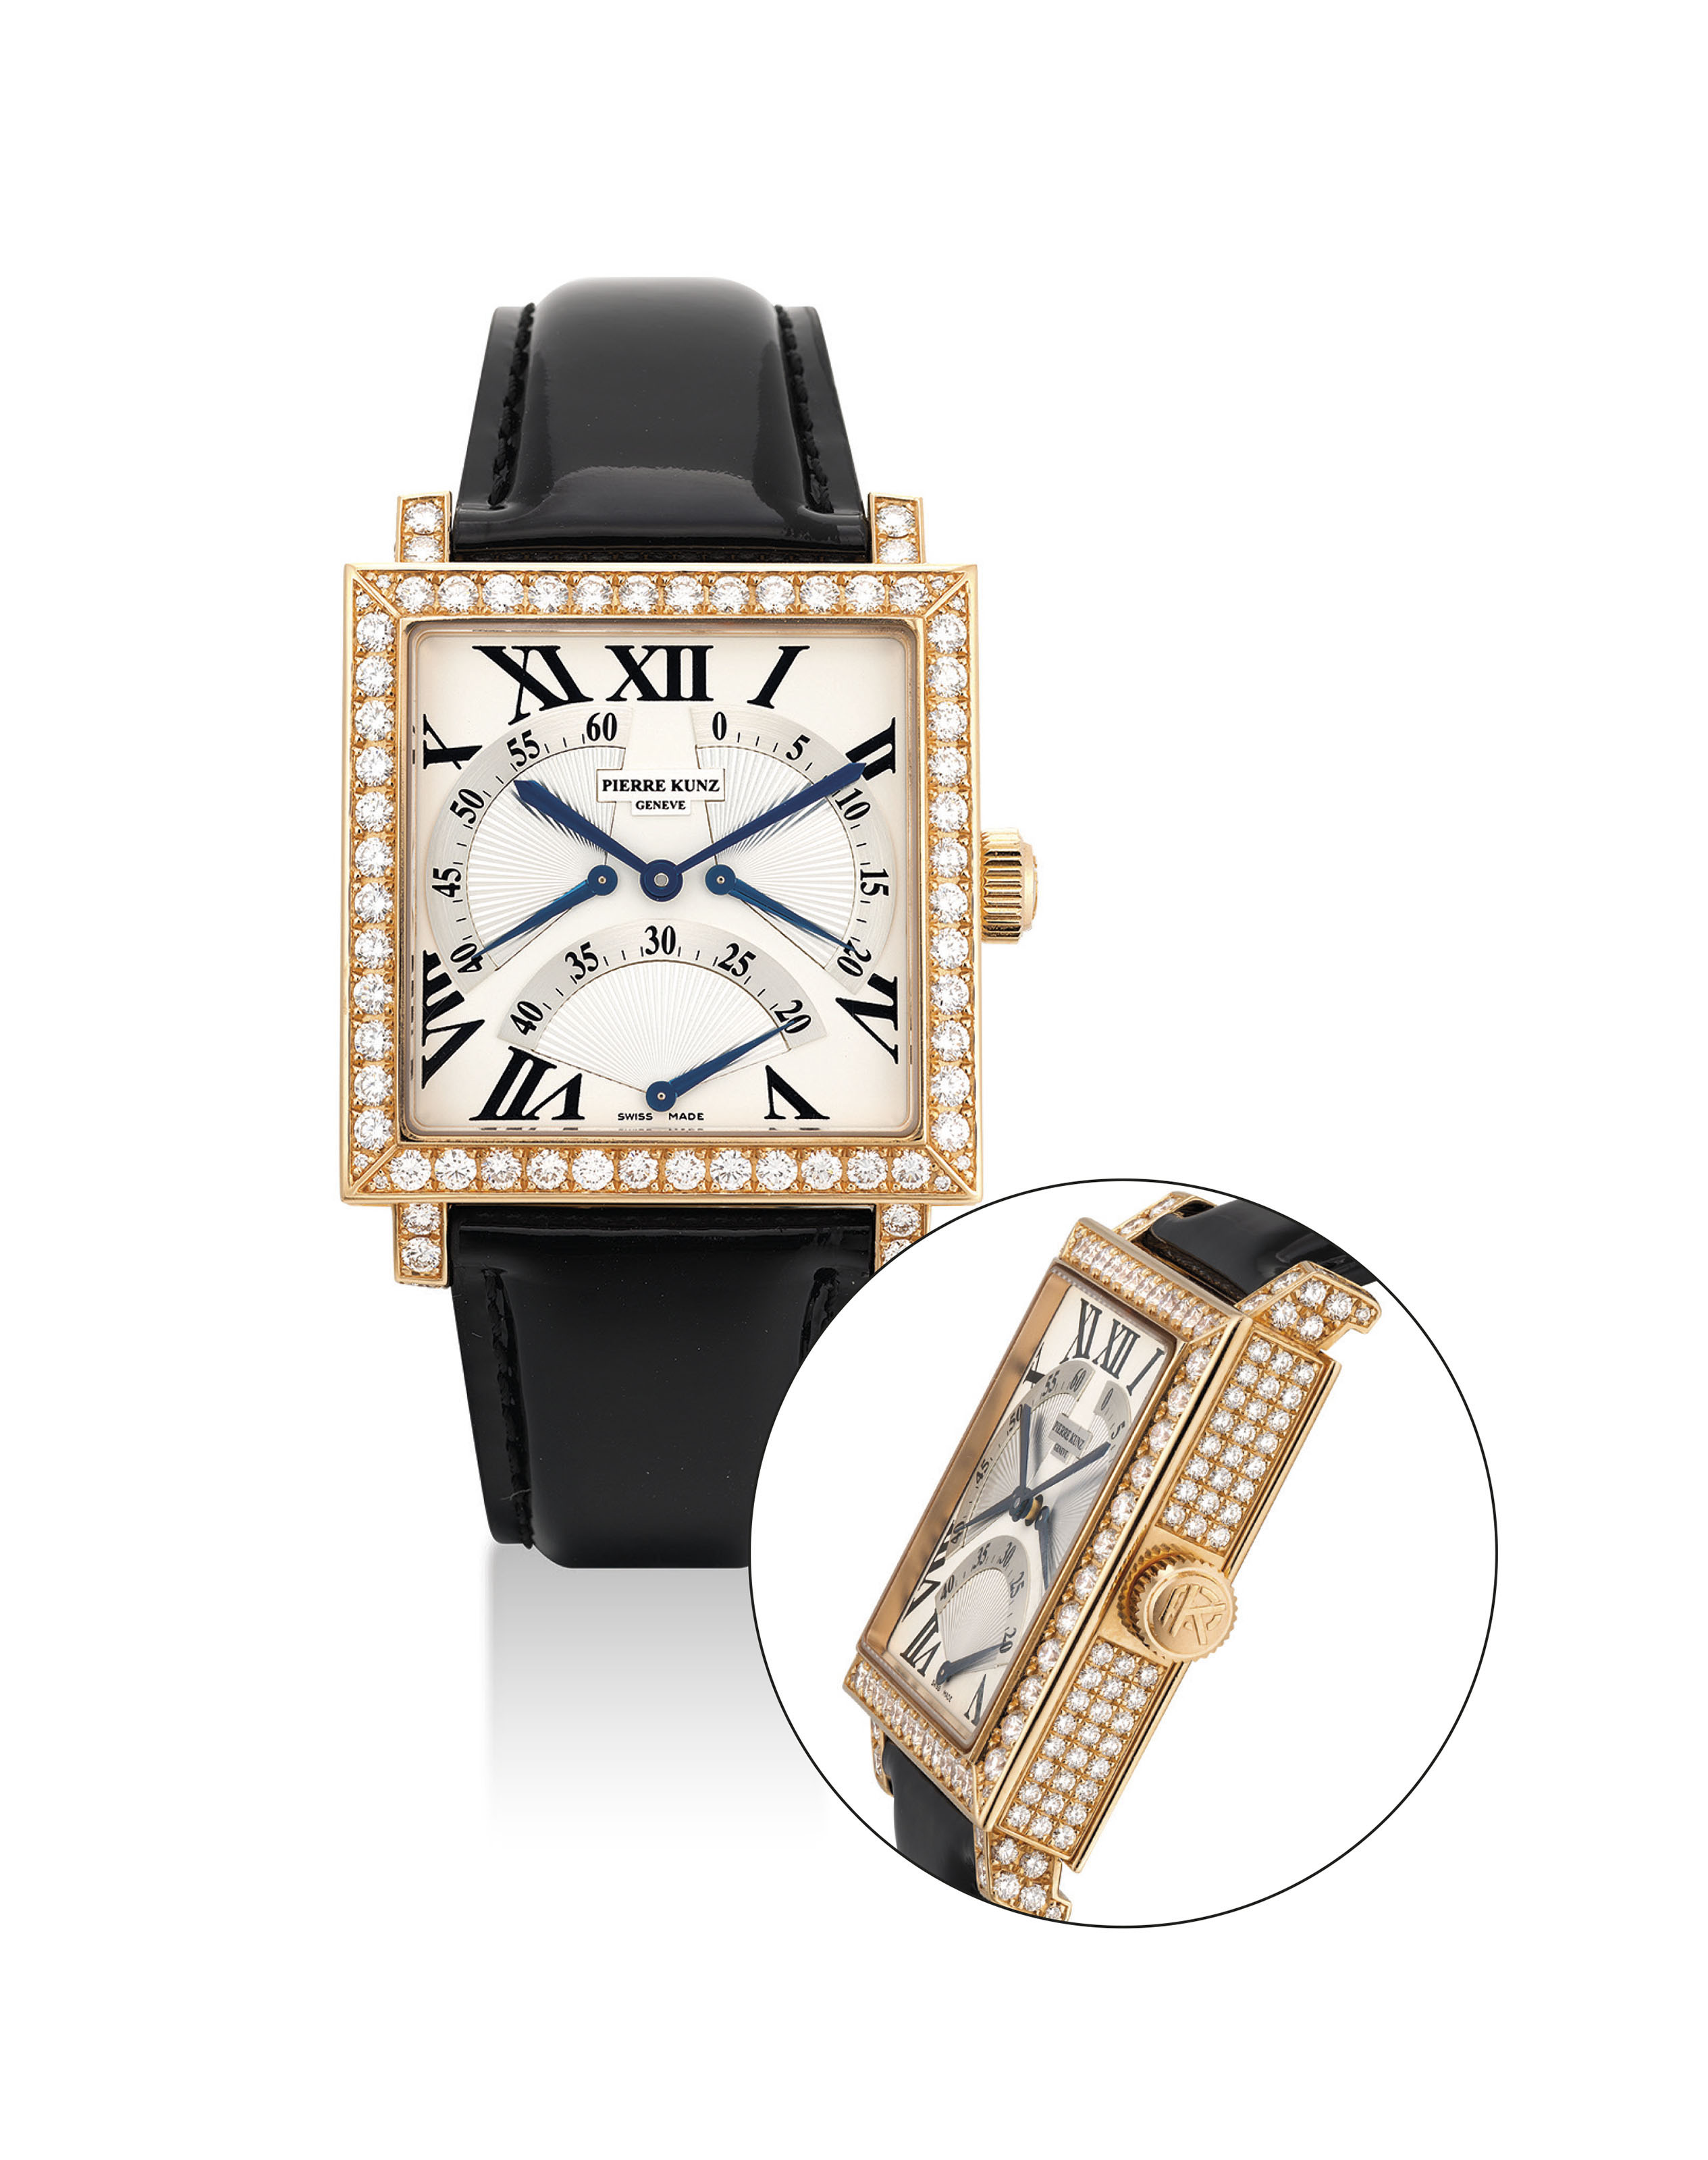 PIERRE KUNZ. AN 18K PINK GOLD AND DIAMOND-SET SQUARE AUTOMATIC WRISTWATCH WITH RETROGRADE SECONDS